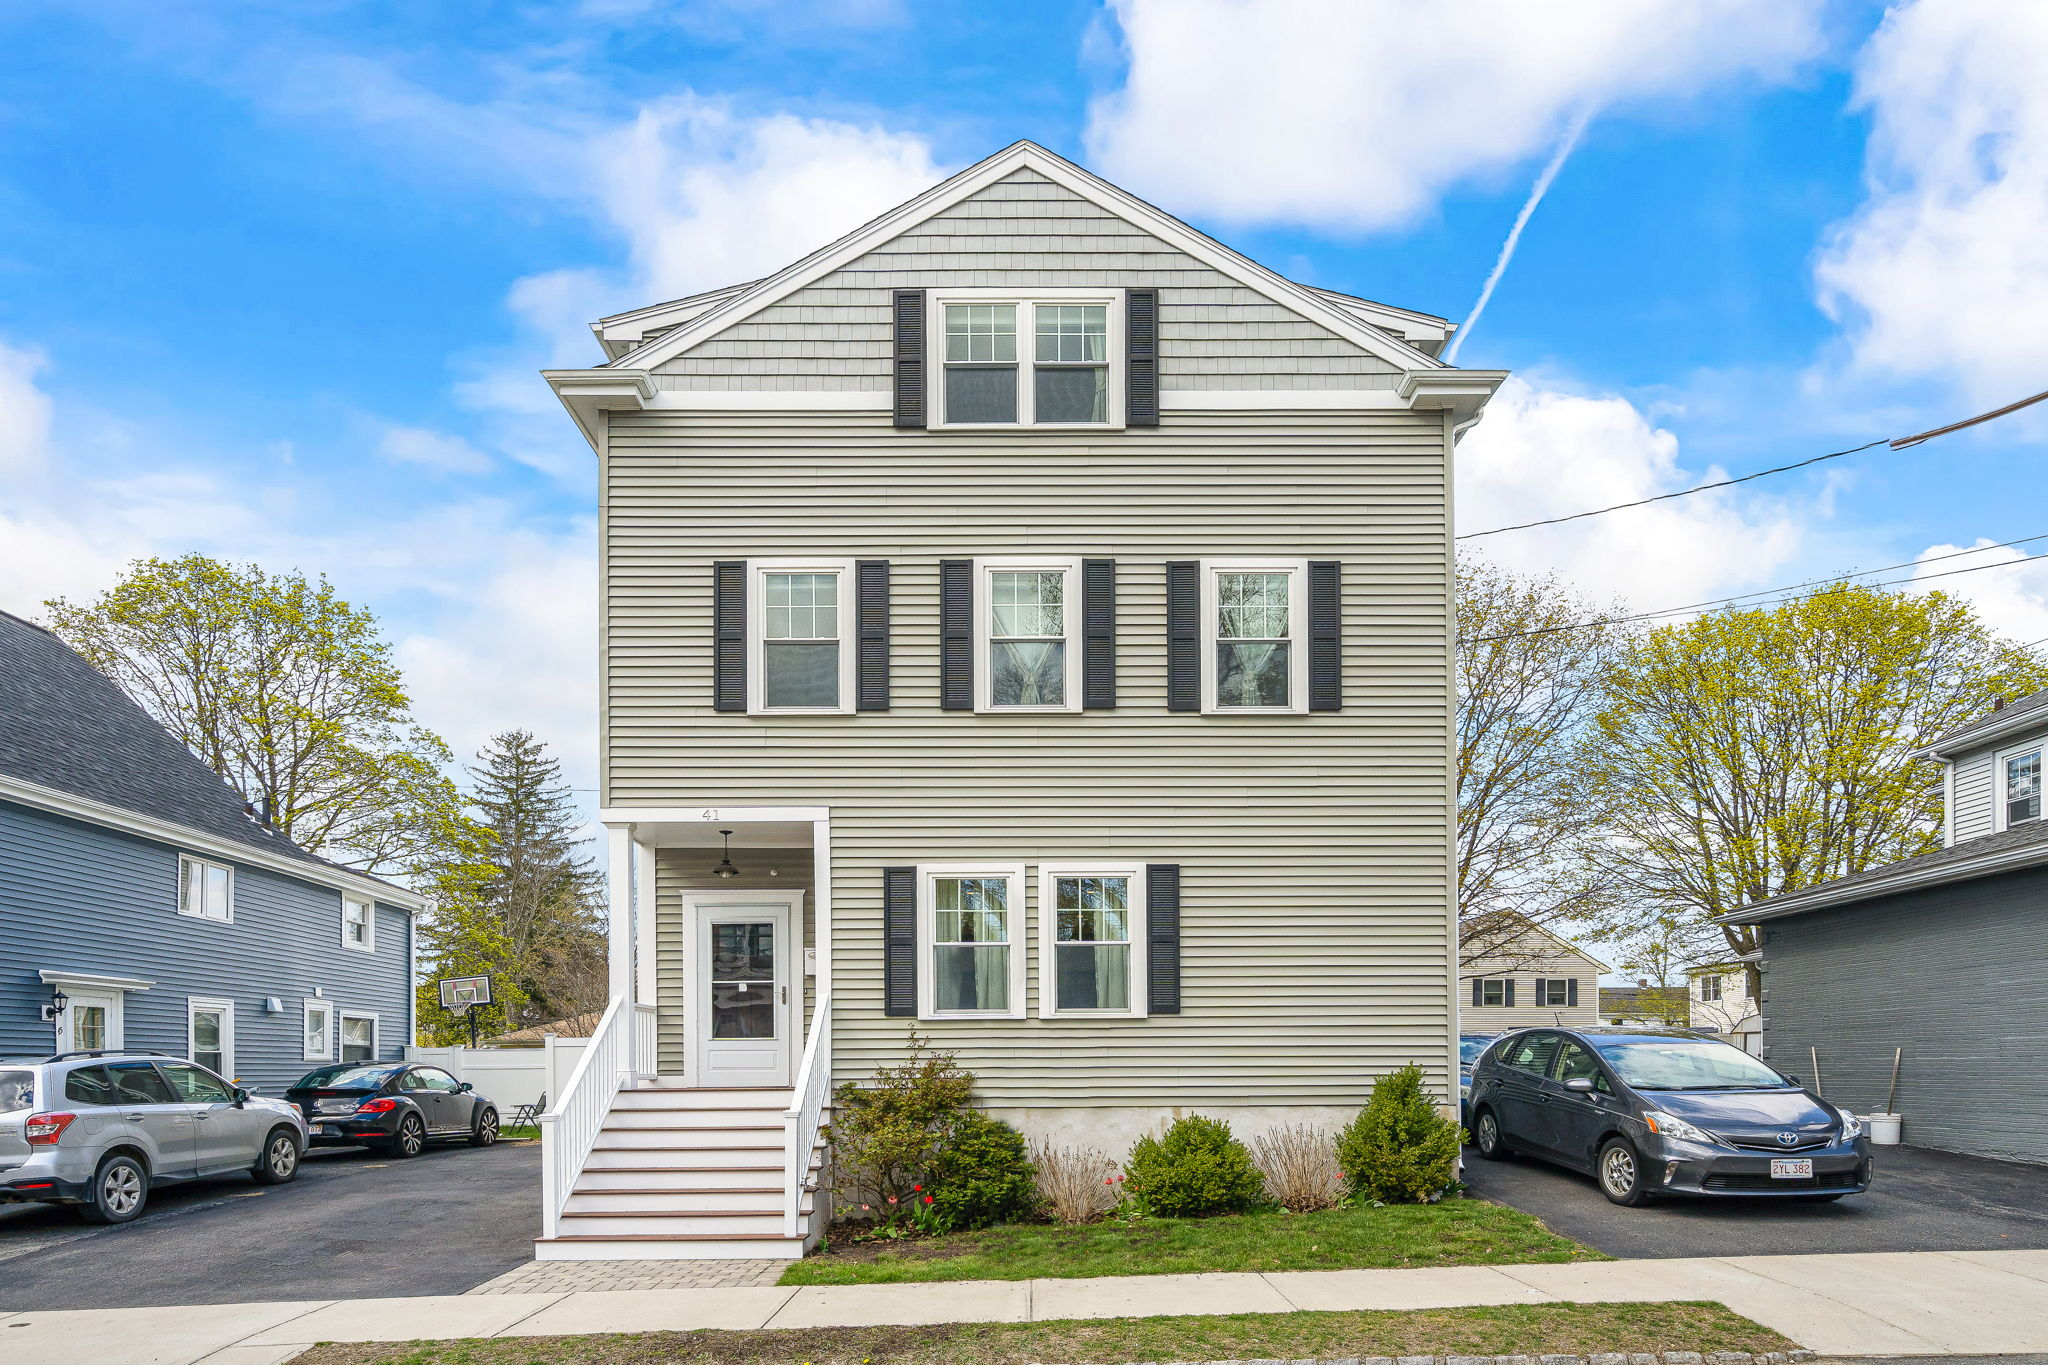 41 Holland St, Winchester, MA 01890, US